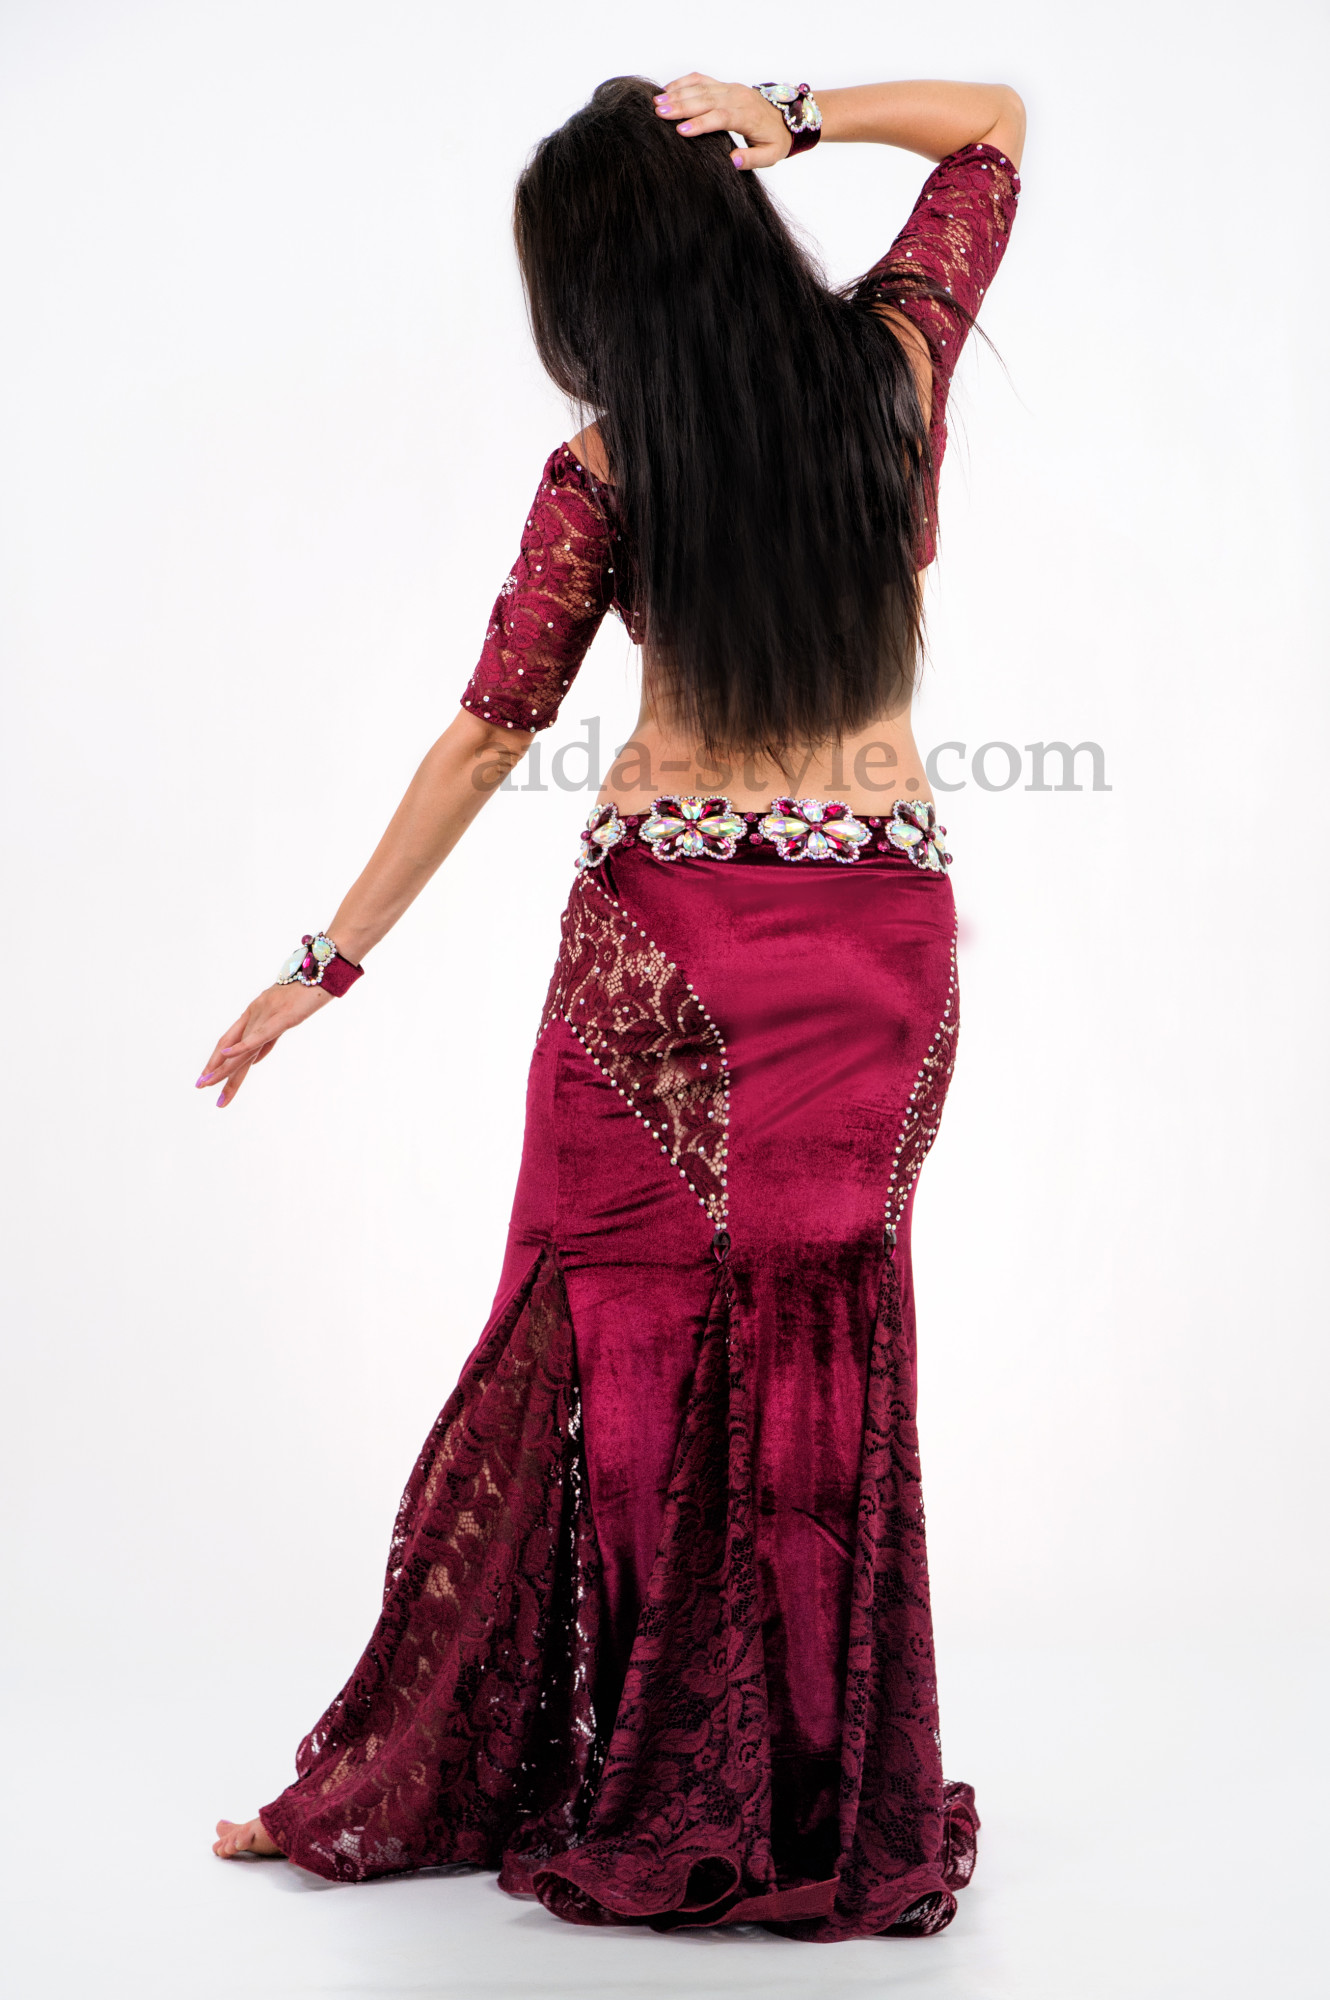 Elegant professional belly dance skin tight suit. Bra and belt are decorated with stones. Skirt has flounces